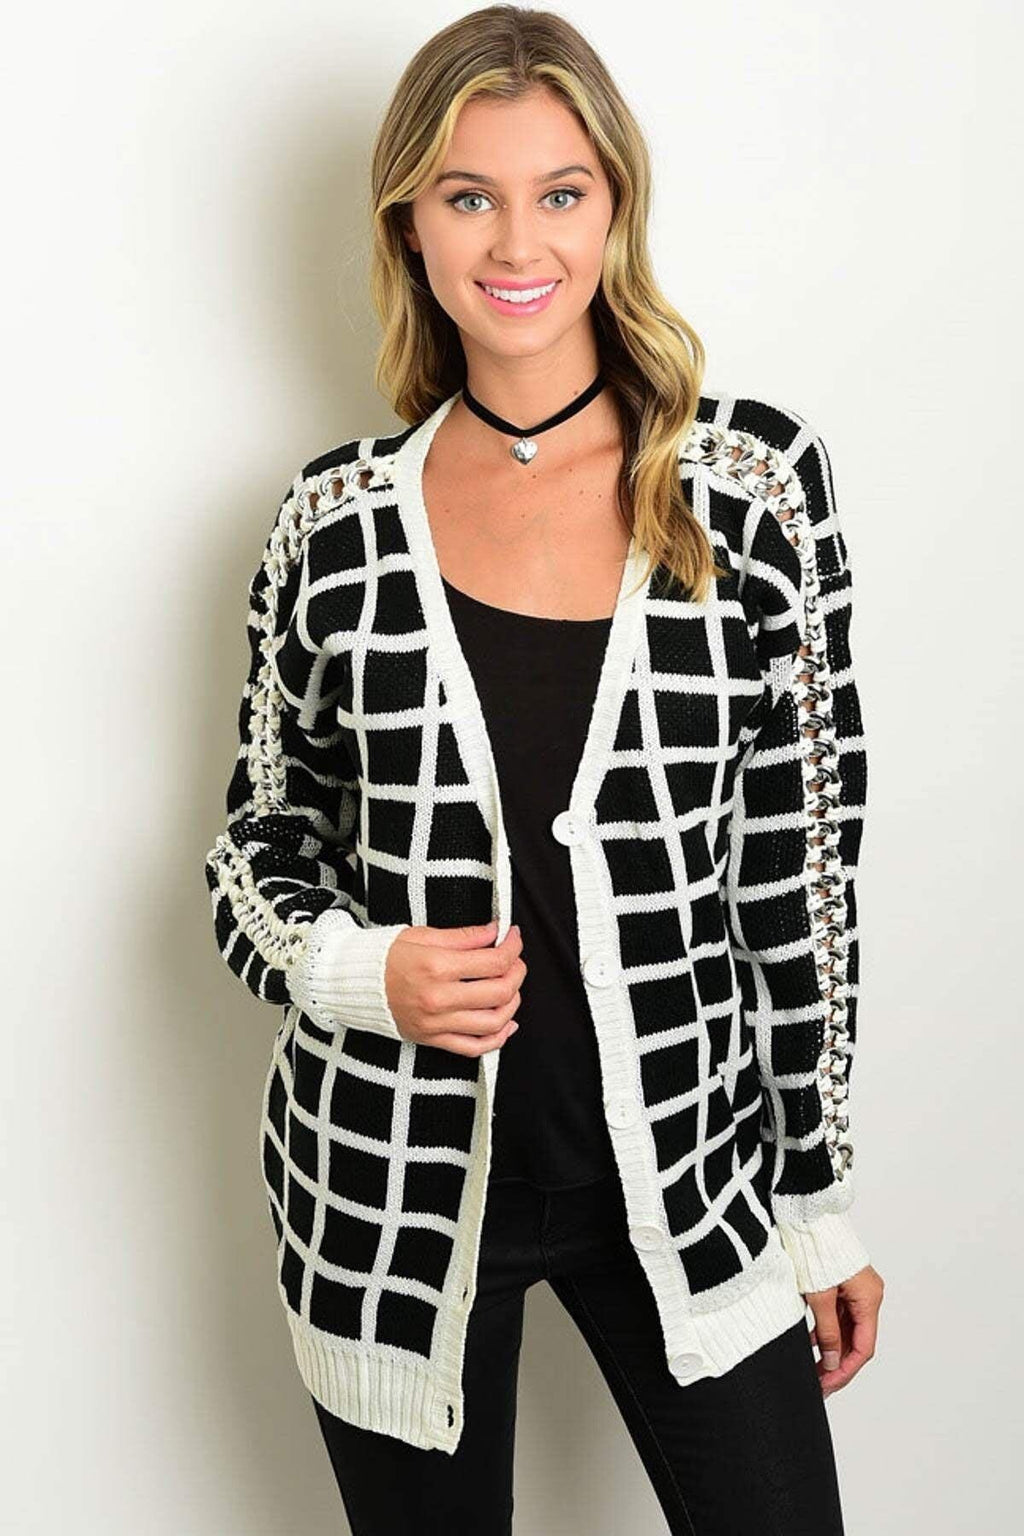 Black & Ivory Cardigan Sweater - My Royal Closet